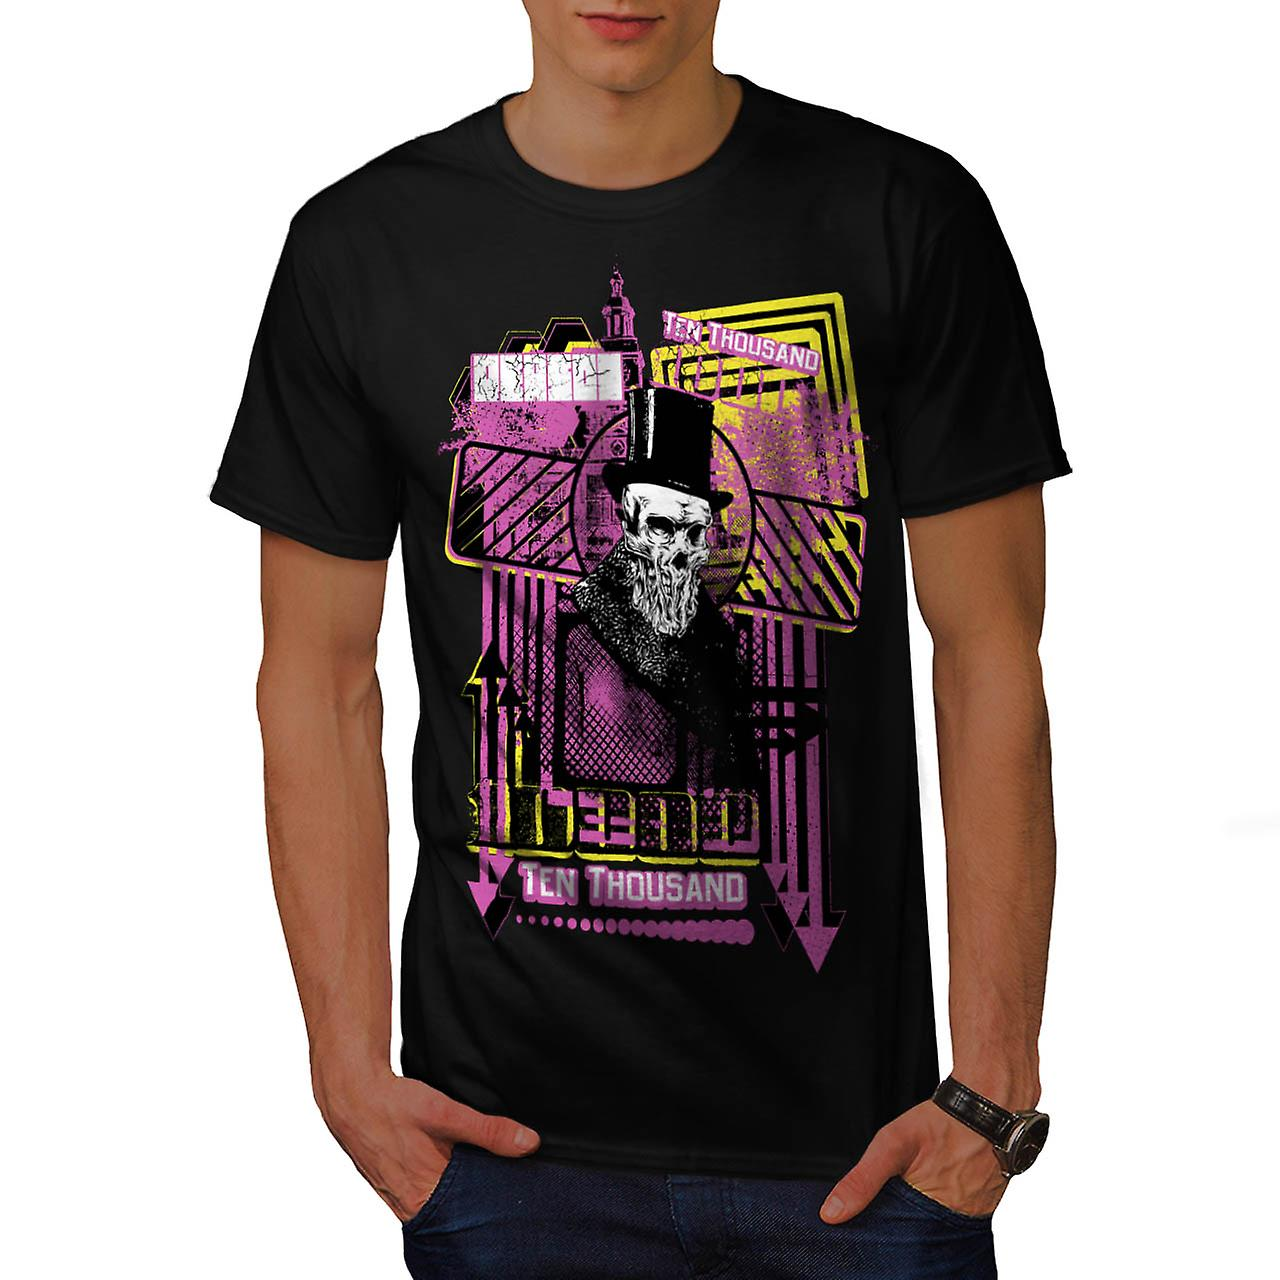 Reason For Death Gent Haunted Men Black T-shirt | Wellcoda